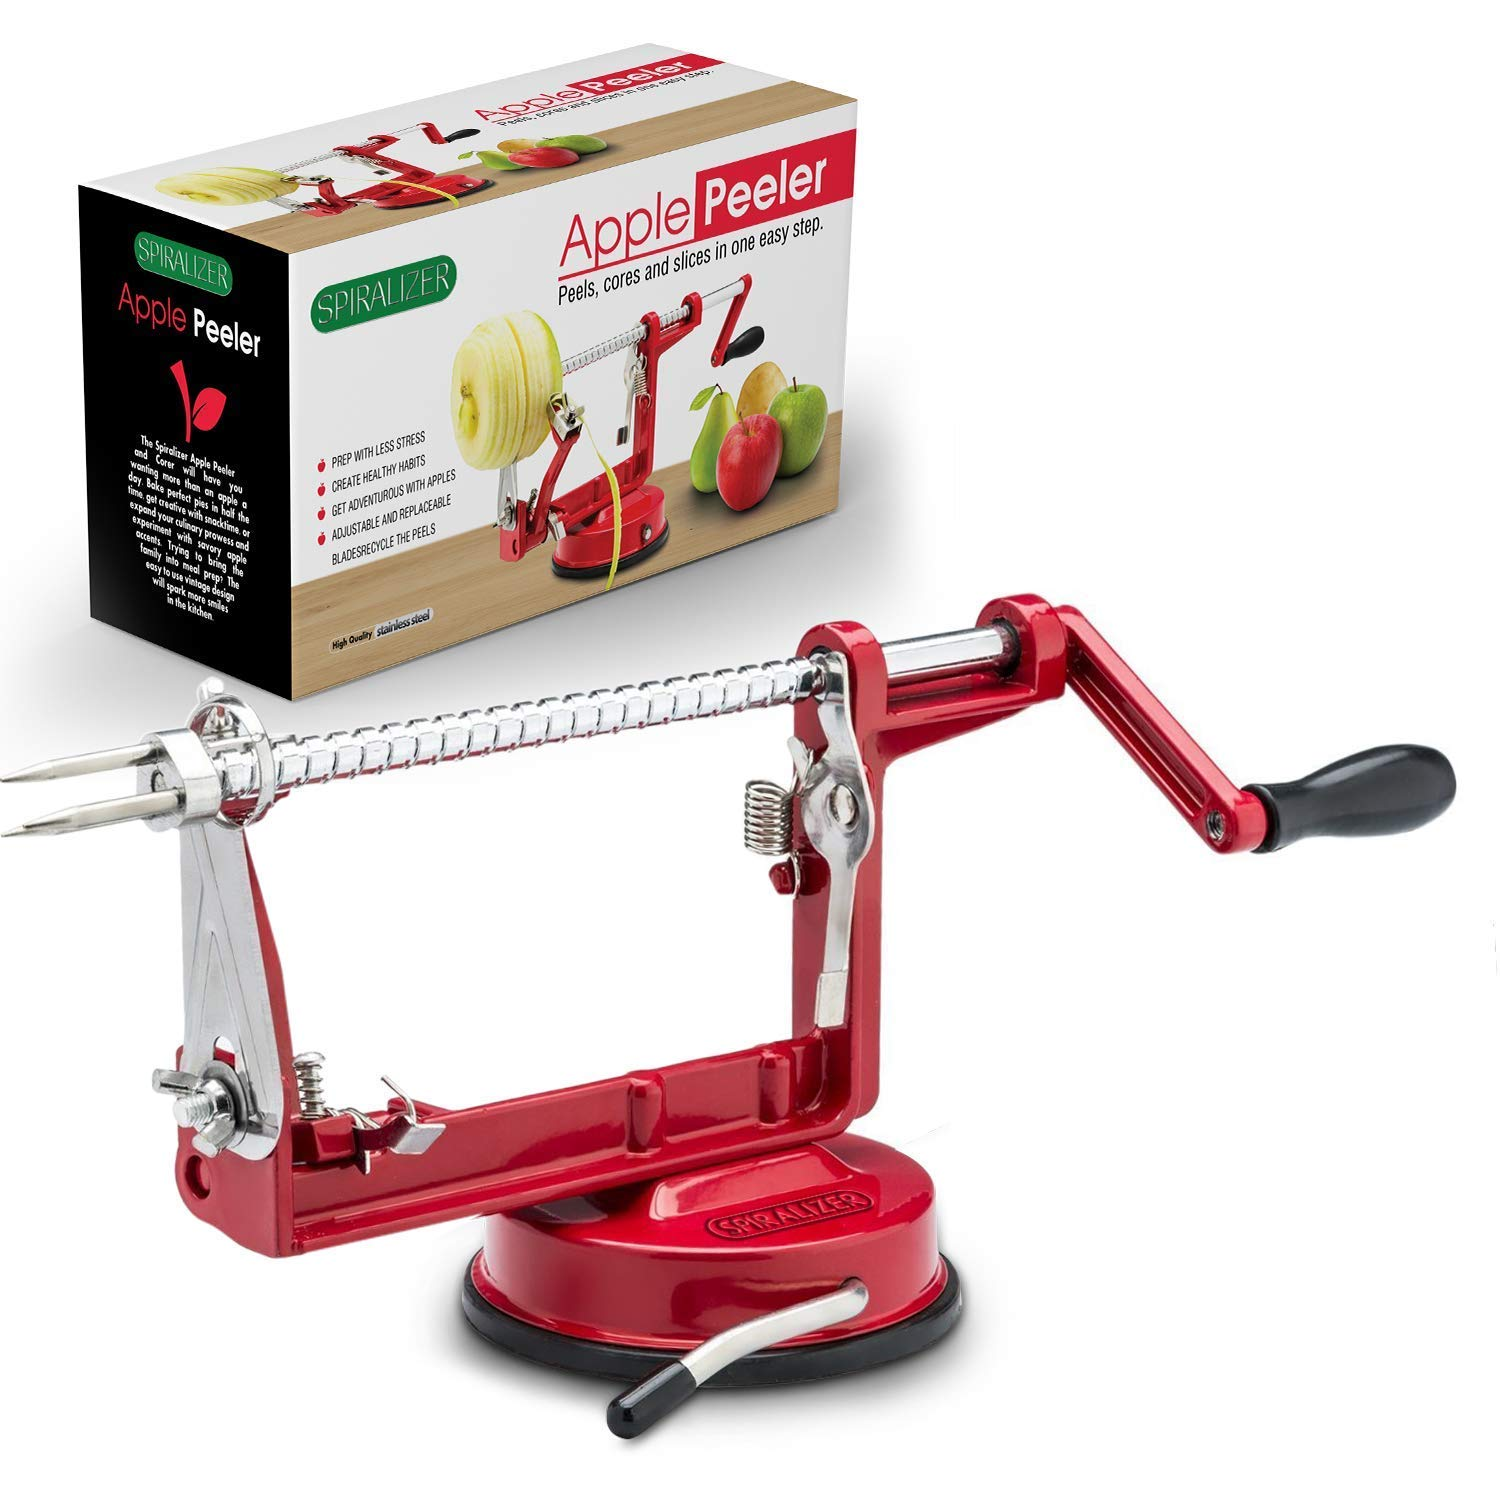 Cast Magnesium Apple/Potato Peeler by Spiralizer, Durable Heavy Duty Die Cast Magnesium Alloy Apple/Potato Peeler Corer